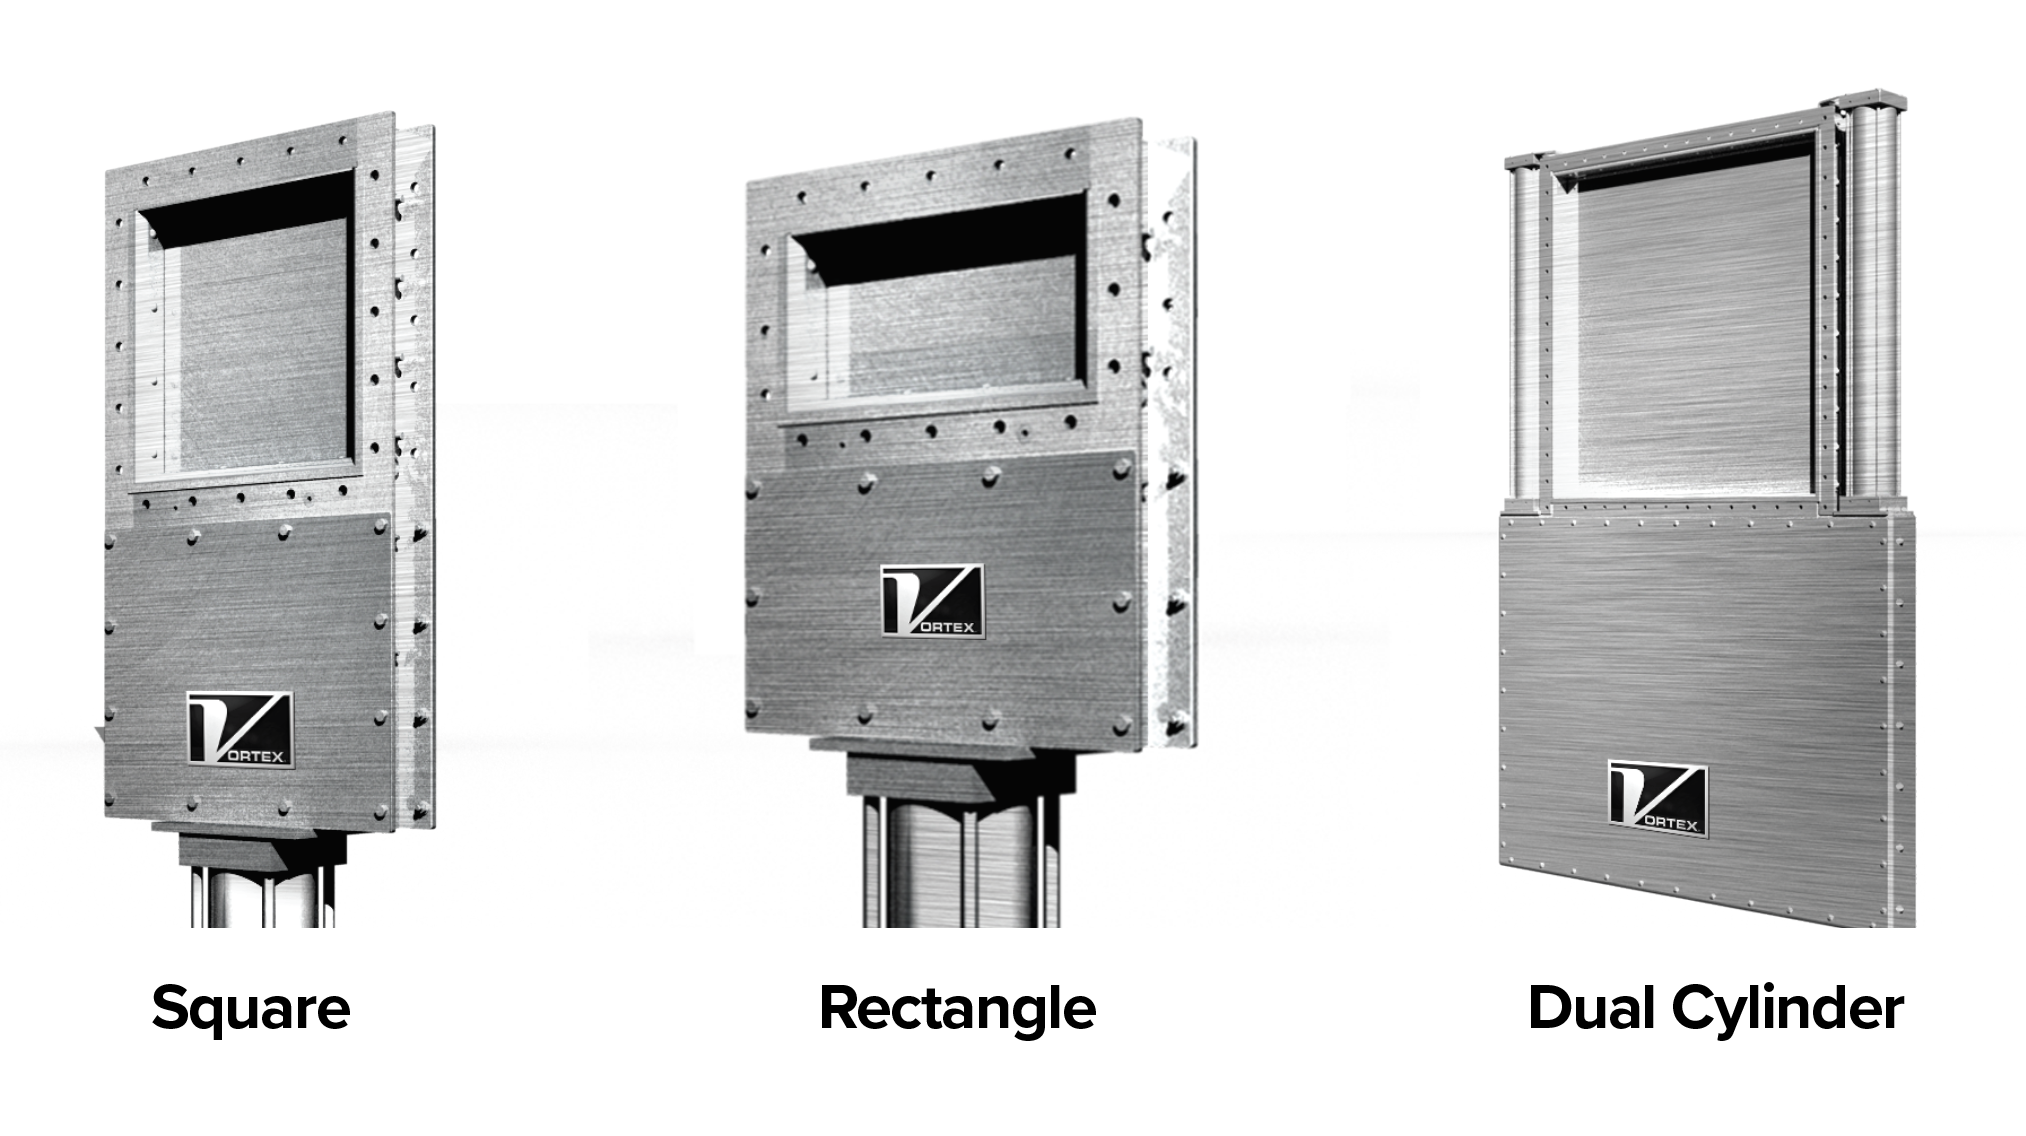 Roller Gate options. 1. Square, 2. Rectangle, 3. Dual Cylinder